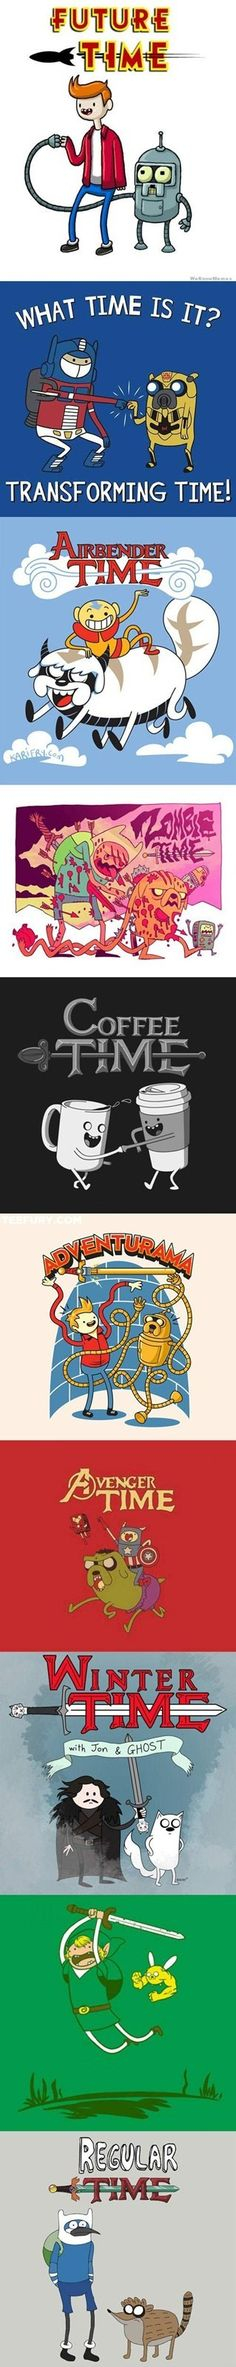 Adventure Time + Futurama + Transformers + Avatar + Zombies + Coffee + Futurama + The Avengers + Game of Thrones + Zelda + Regular Show